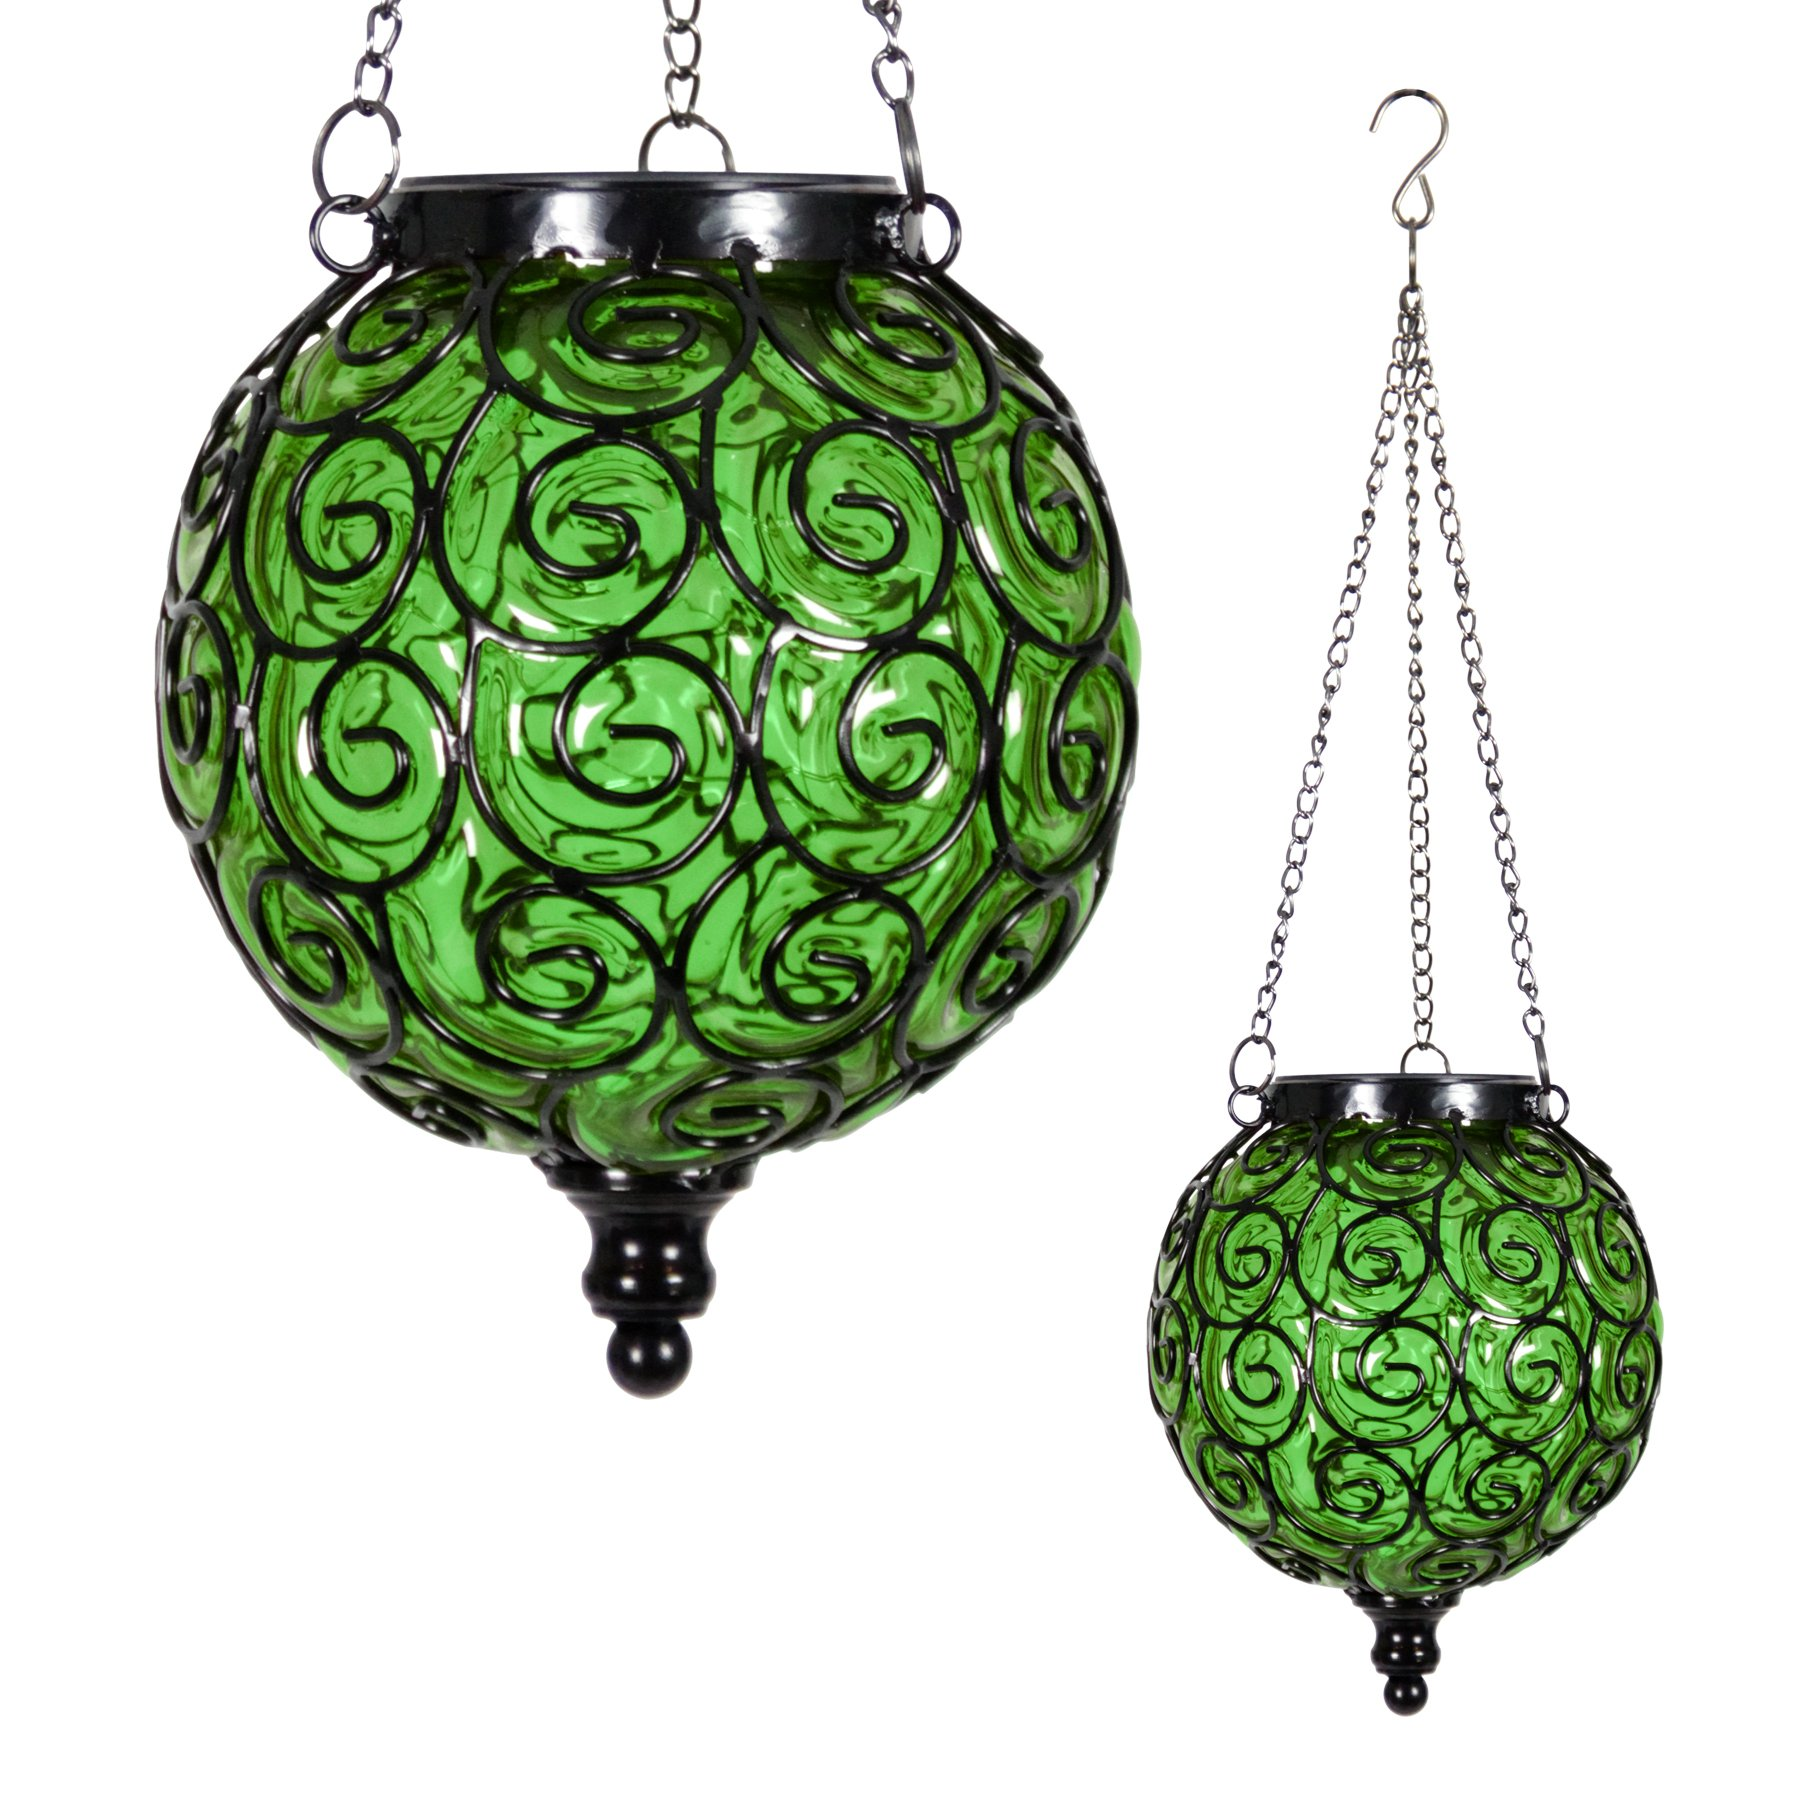 Exhart Round Solar Green Glass Hanging Lantern with 12 LED Firefly String Light, Glass Lantern, Hanging Decoration, Backyard/Outdoor / Garden